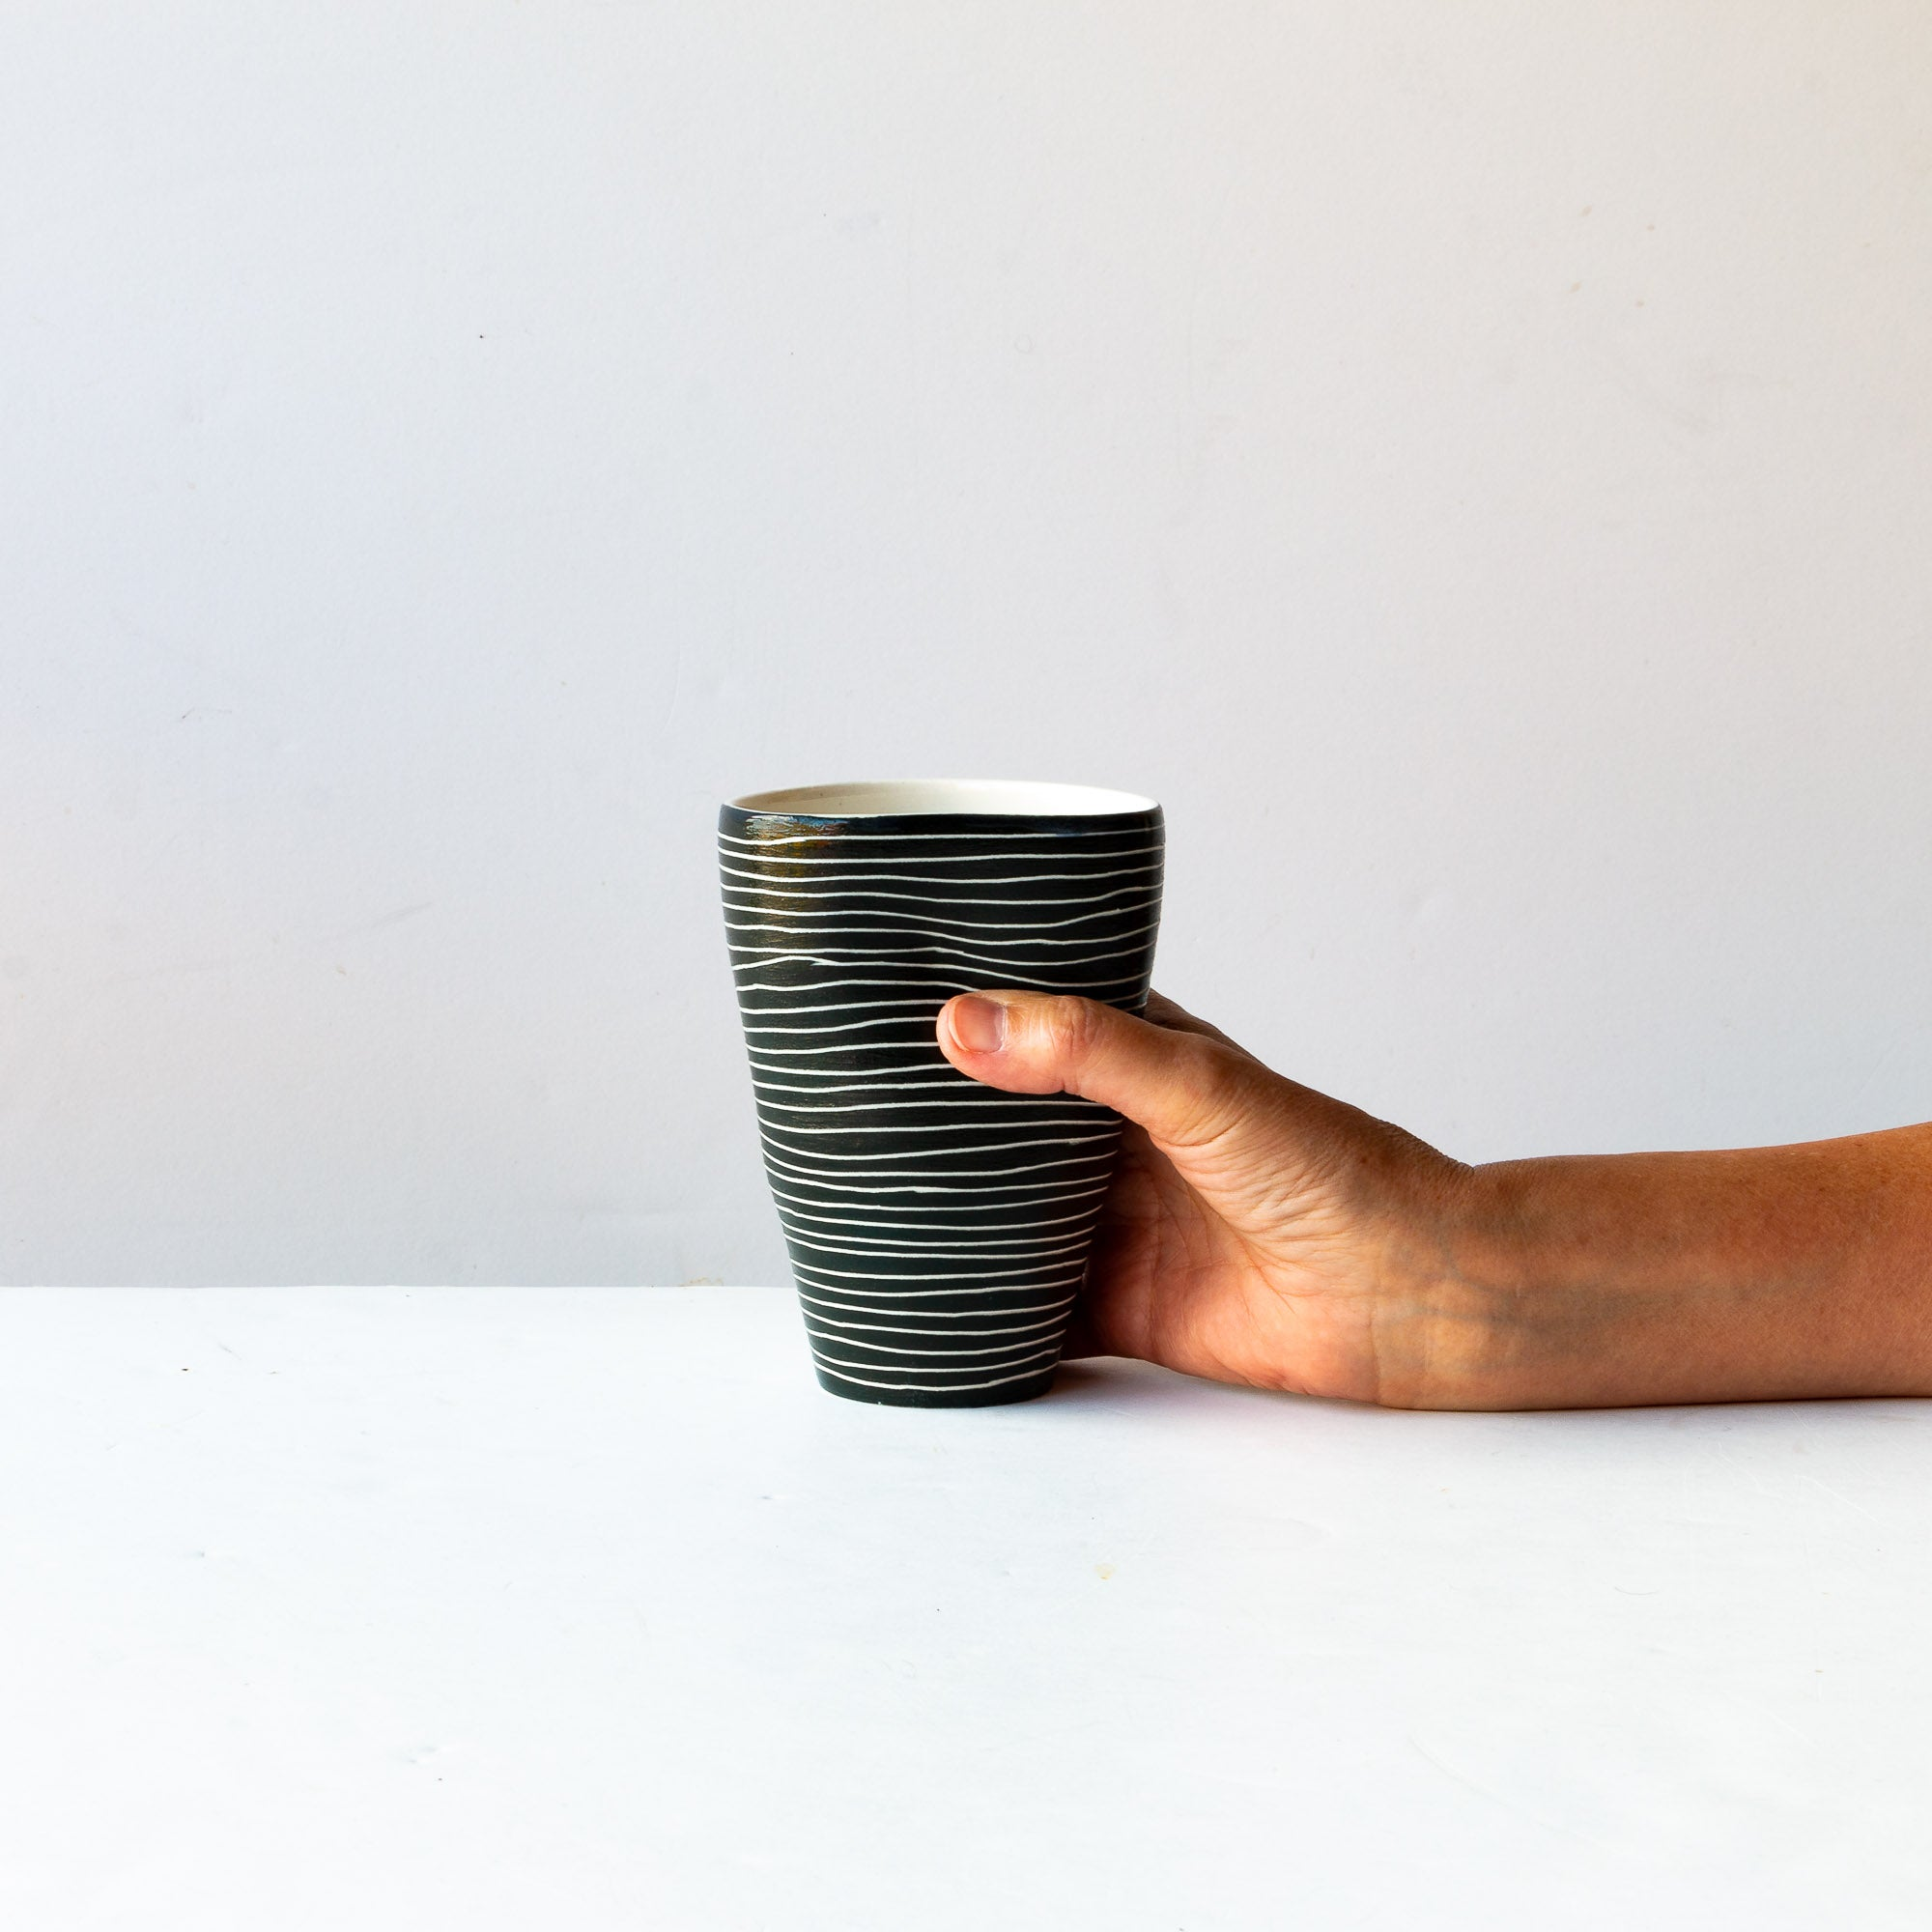 Two Handmade Large Black & Wwite Porcelain Tumblers - Sold by Chic & Basta